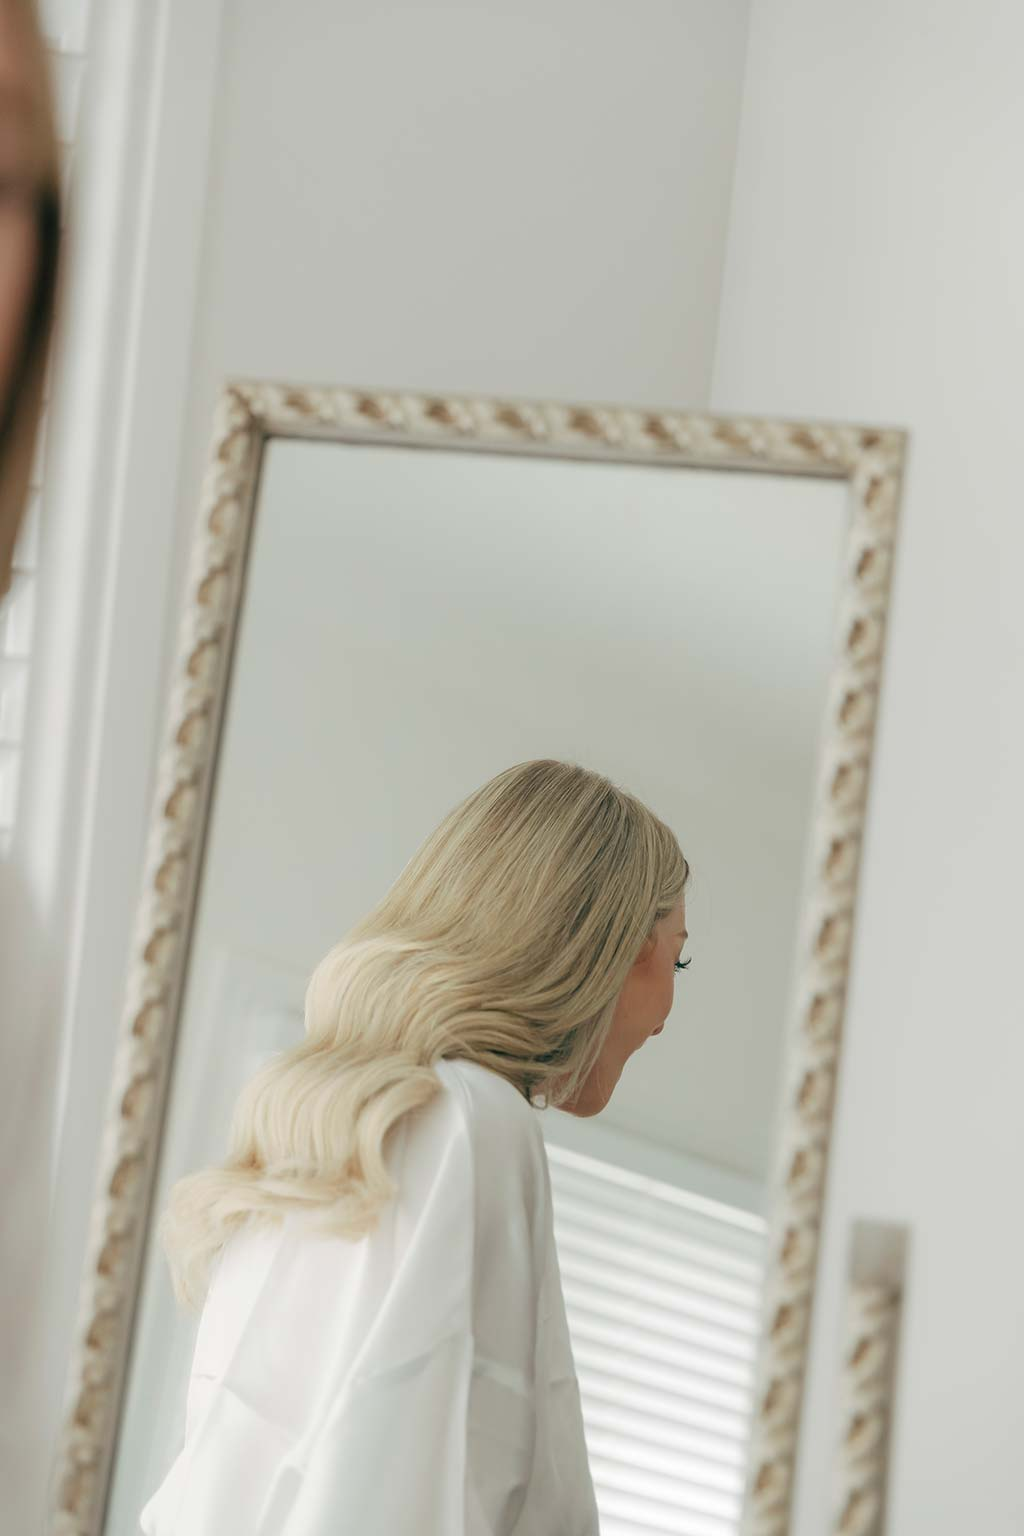 Vinka Design Bridal Wear features Real Wedding Matt and Emilia - Reflections of bride getting ready in the mirror